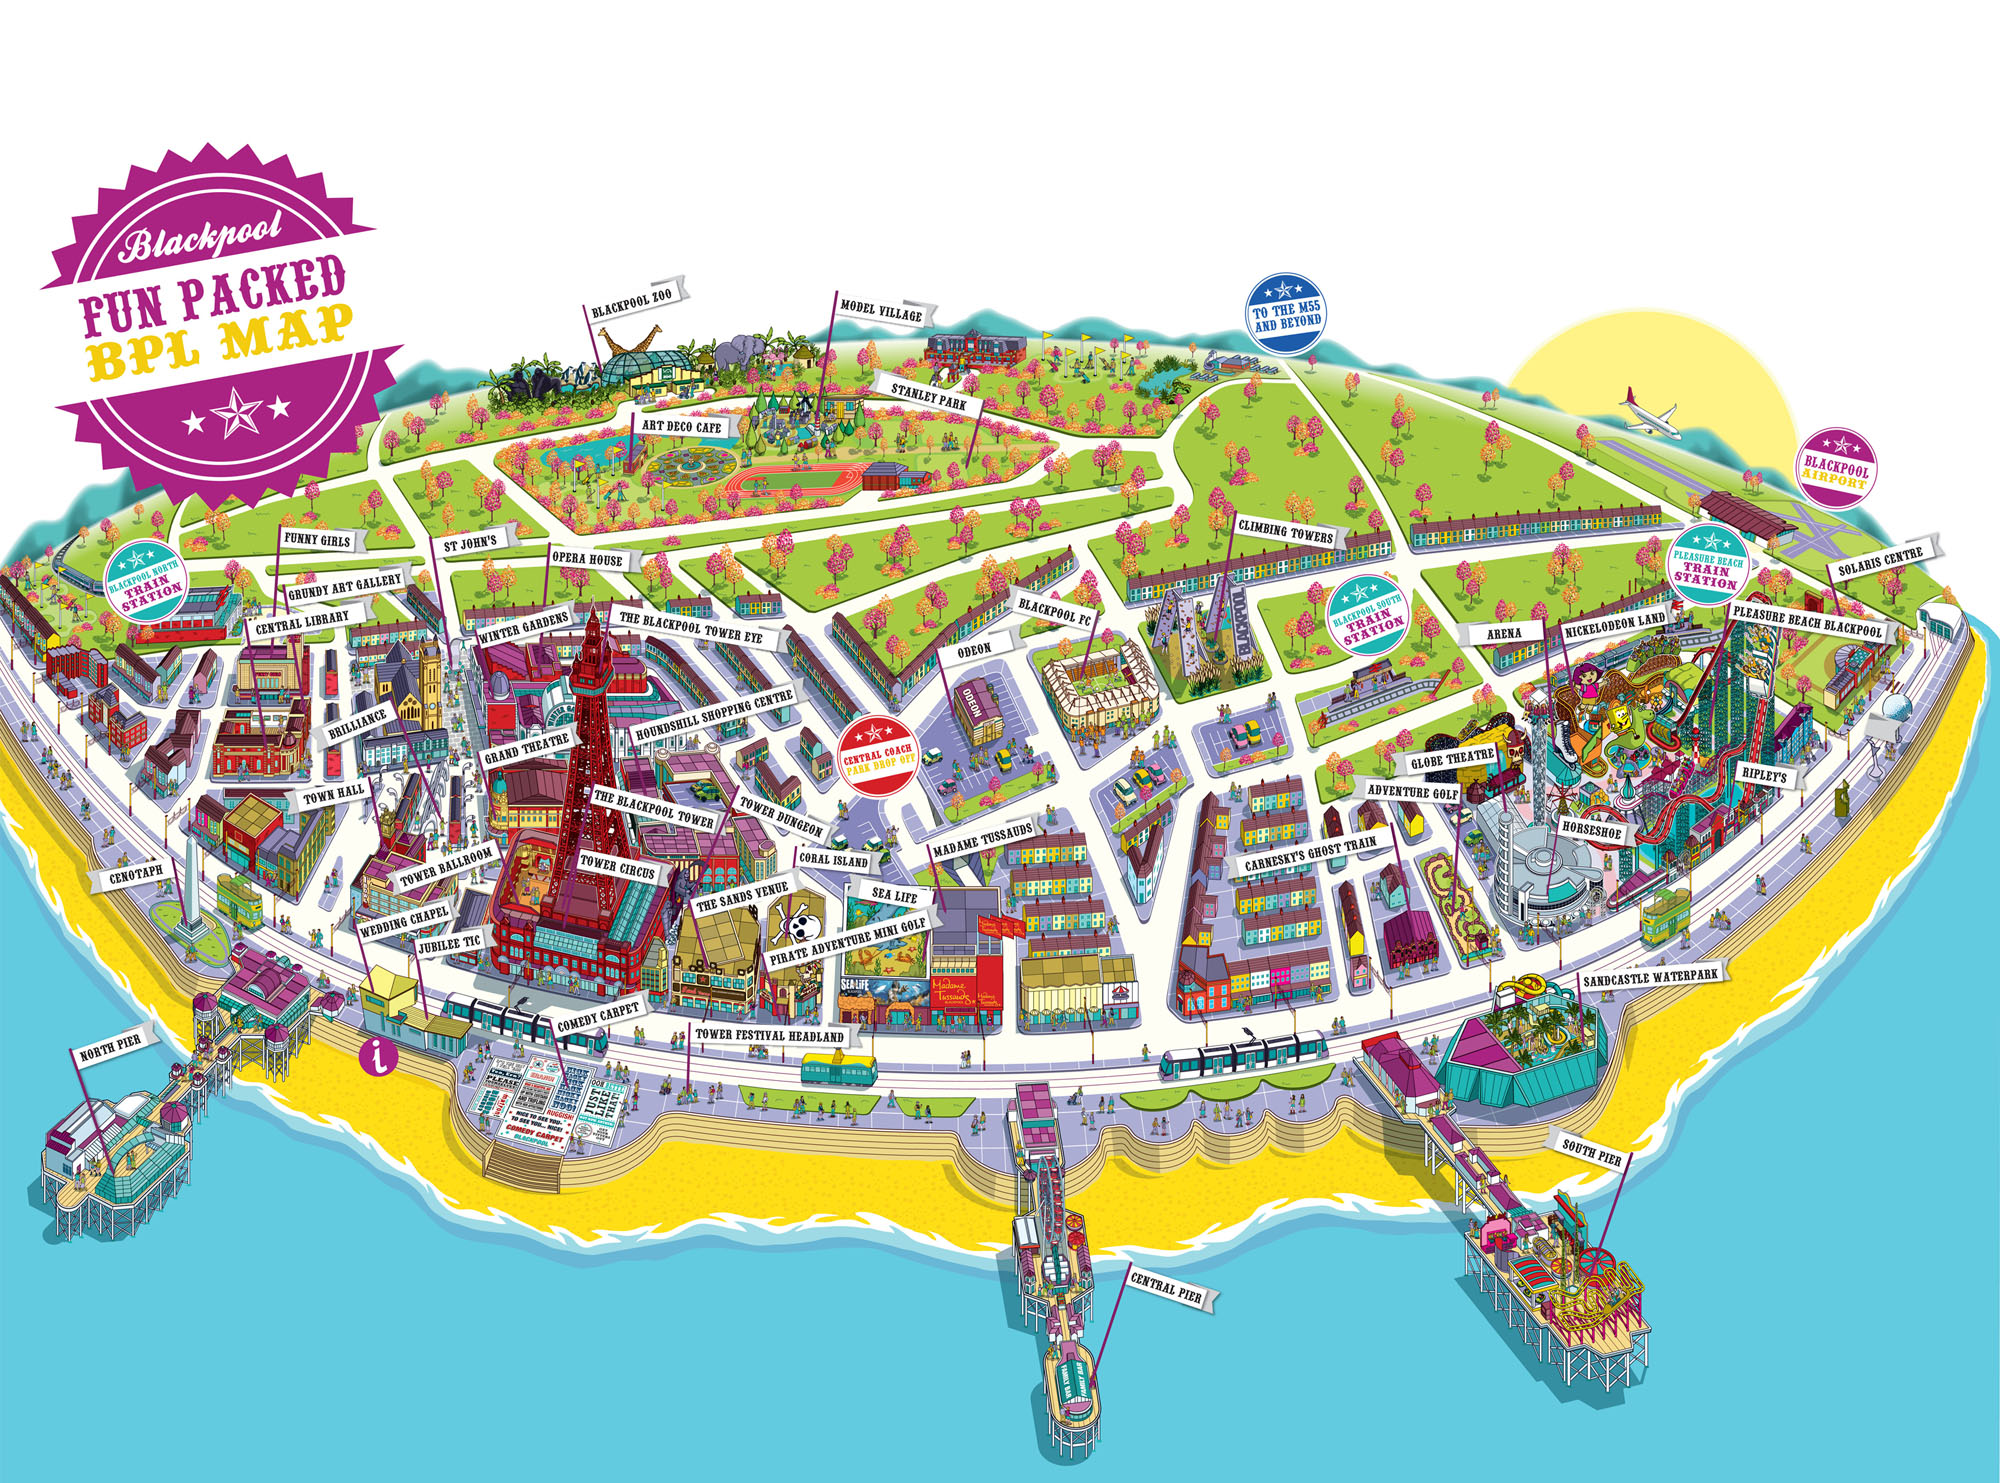 Street Map Of Blackpool Large Blackpool Maps for Free Download and Print | High Resolution